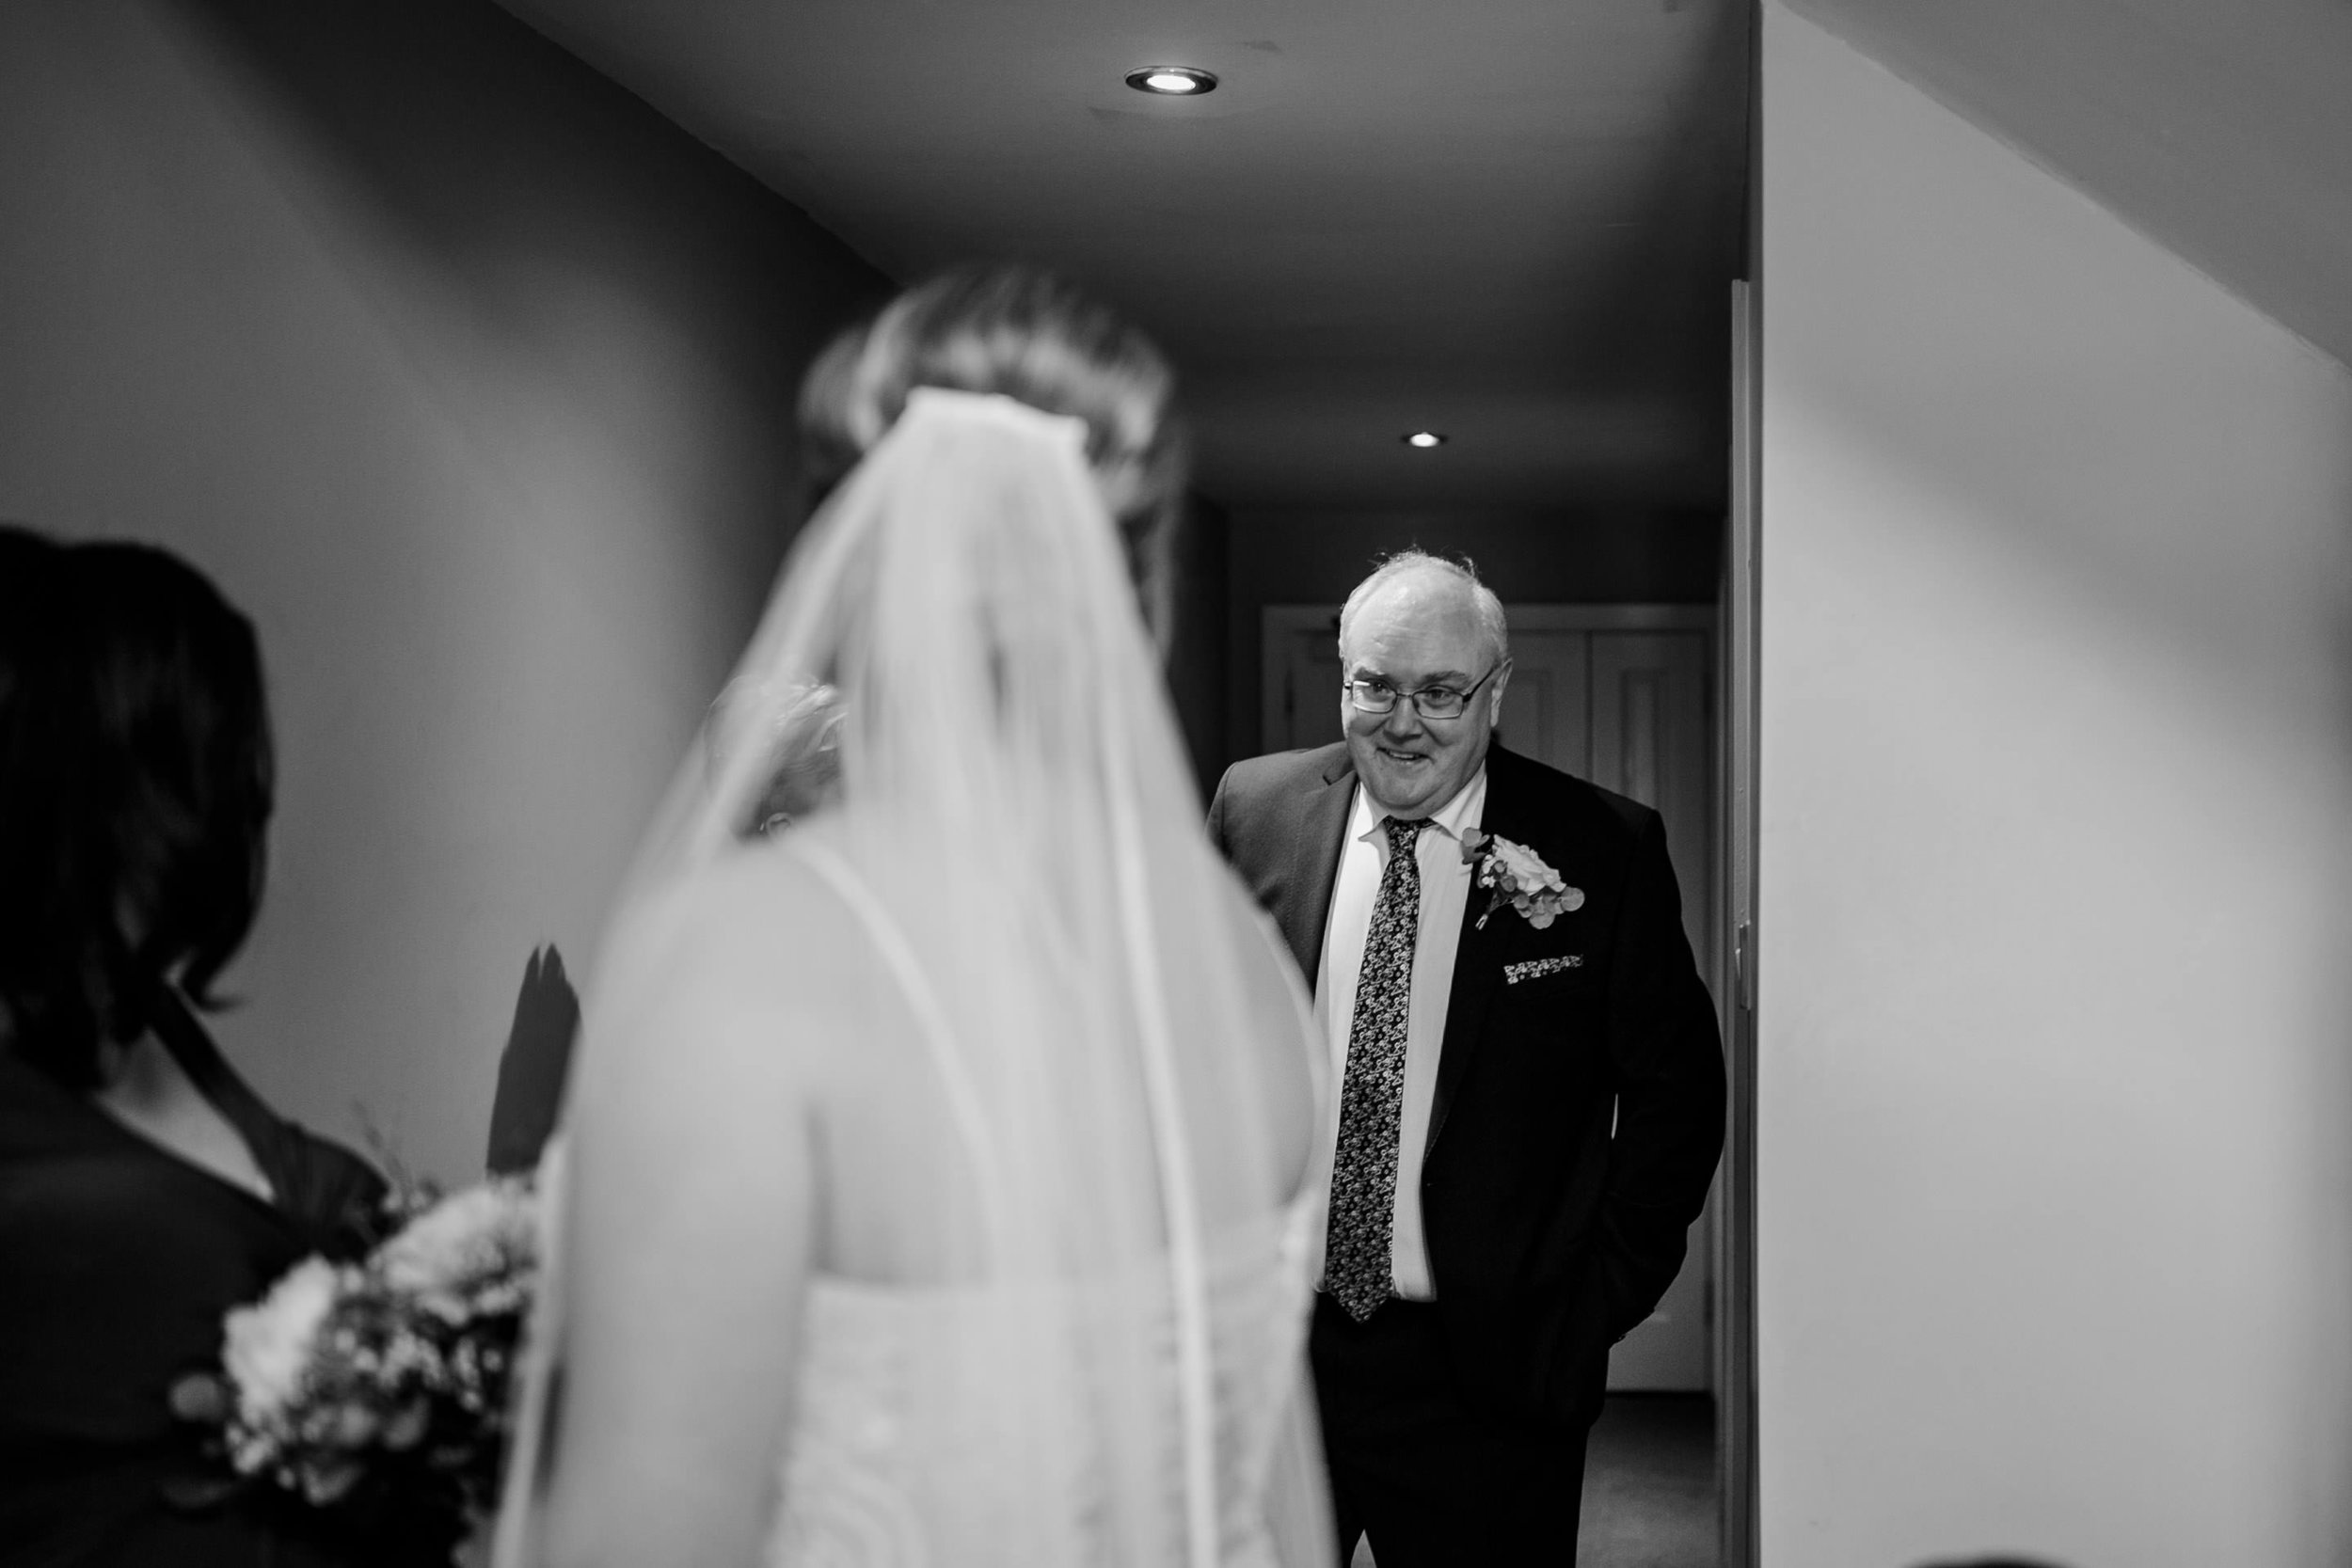 s&a_brooklodge_wedding_photographer_livia_figueiredo_10.jpg